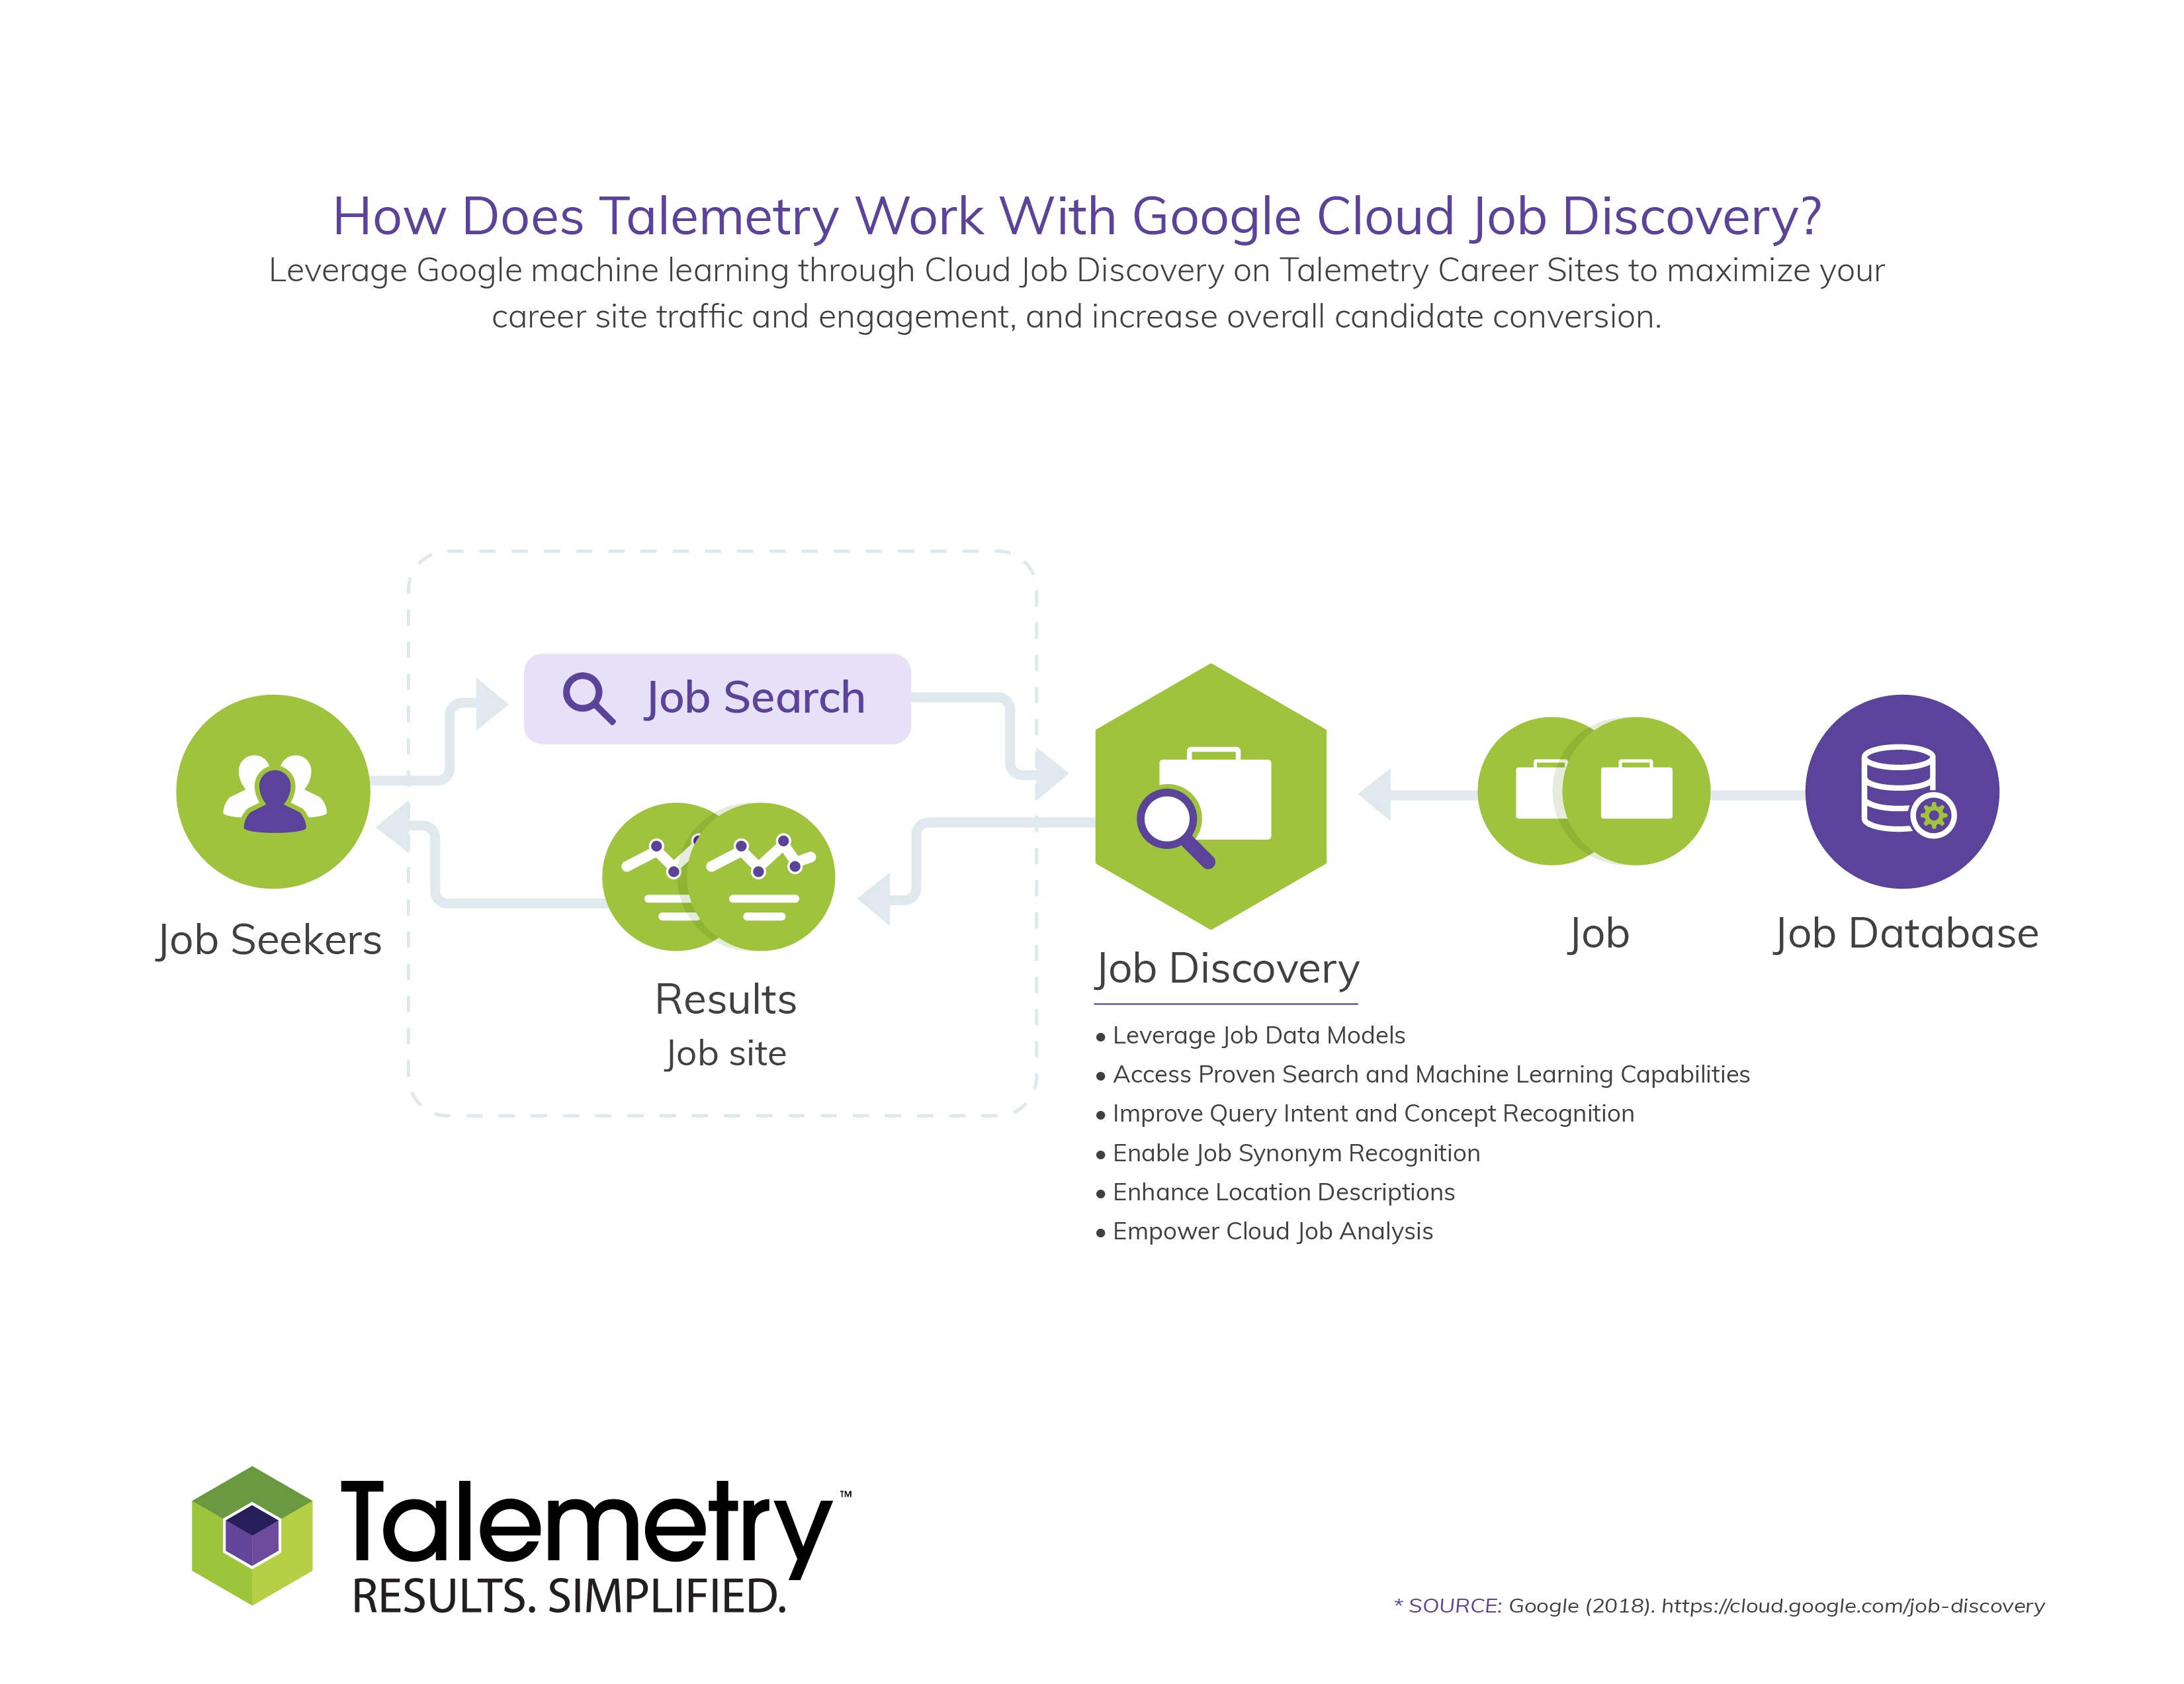 Google Cloud Discovery and Talemetry